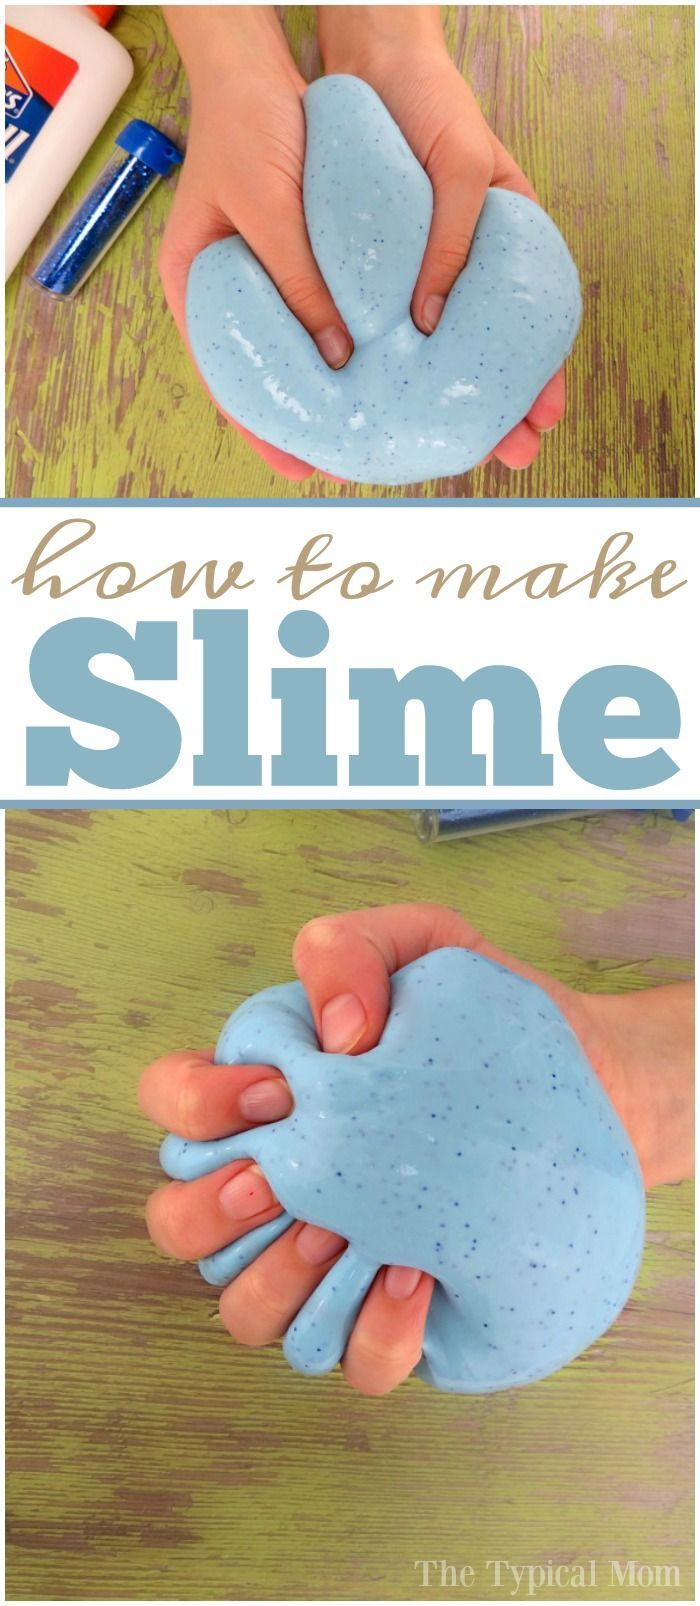 How to make slime with glue and a little glitter inside too! Easy recipe using just a few ingredients, and you can make it any color you like. via /thetypicalmom/